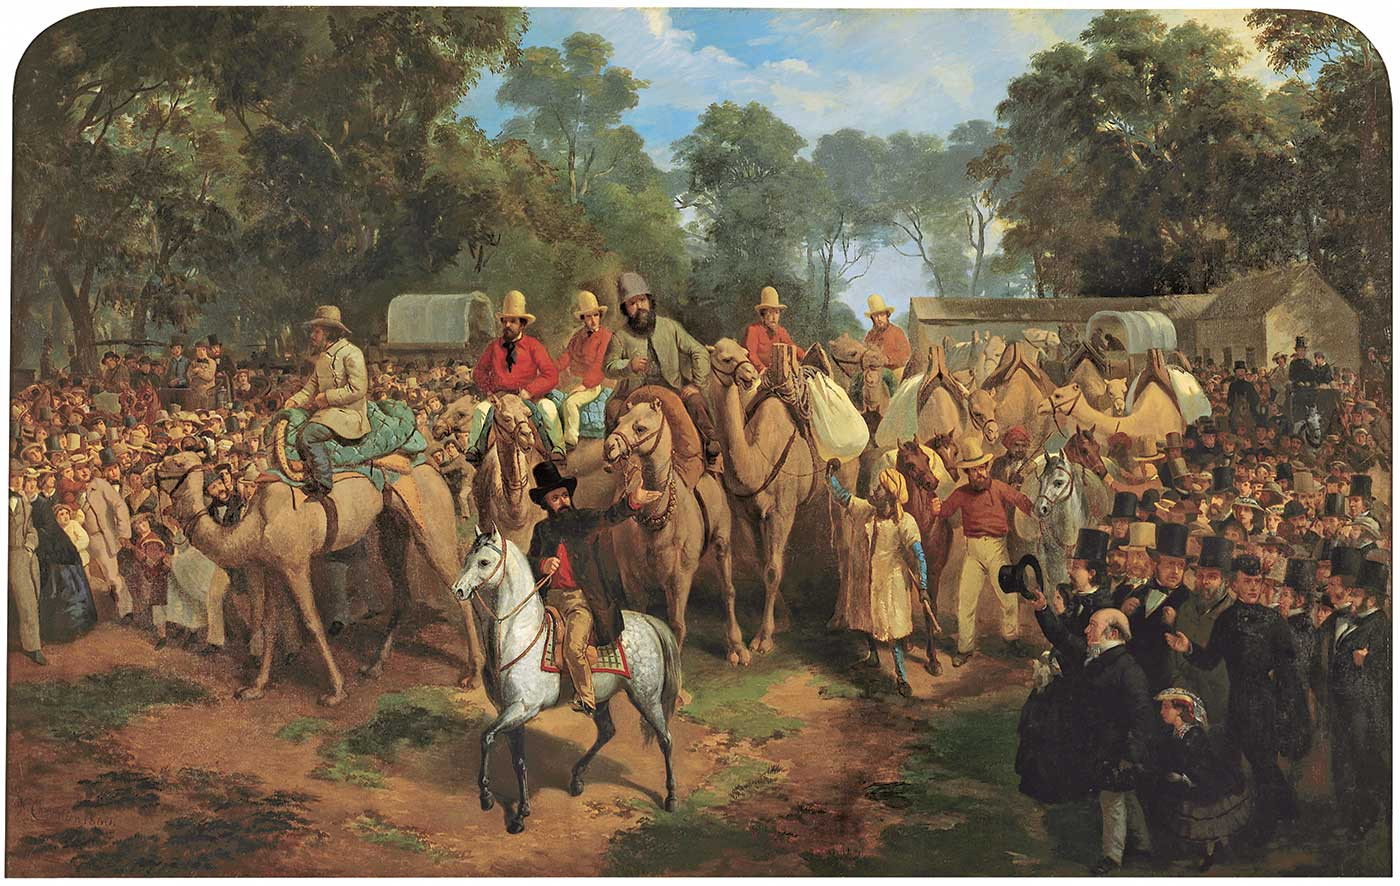 Painting of an large expedition of men on camels surrounded by a crowd of people. - click to view larger image